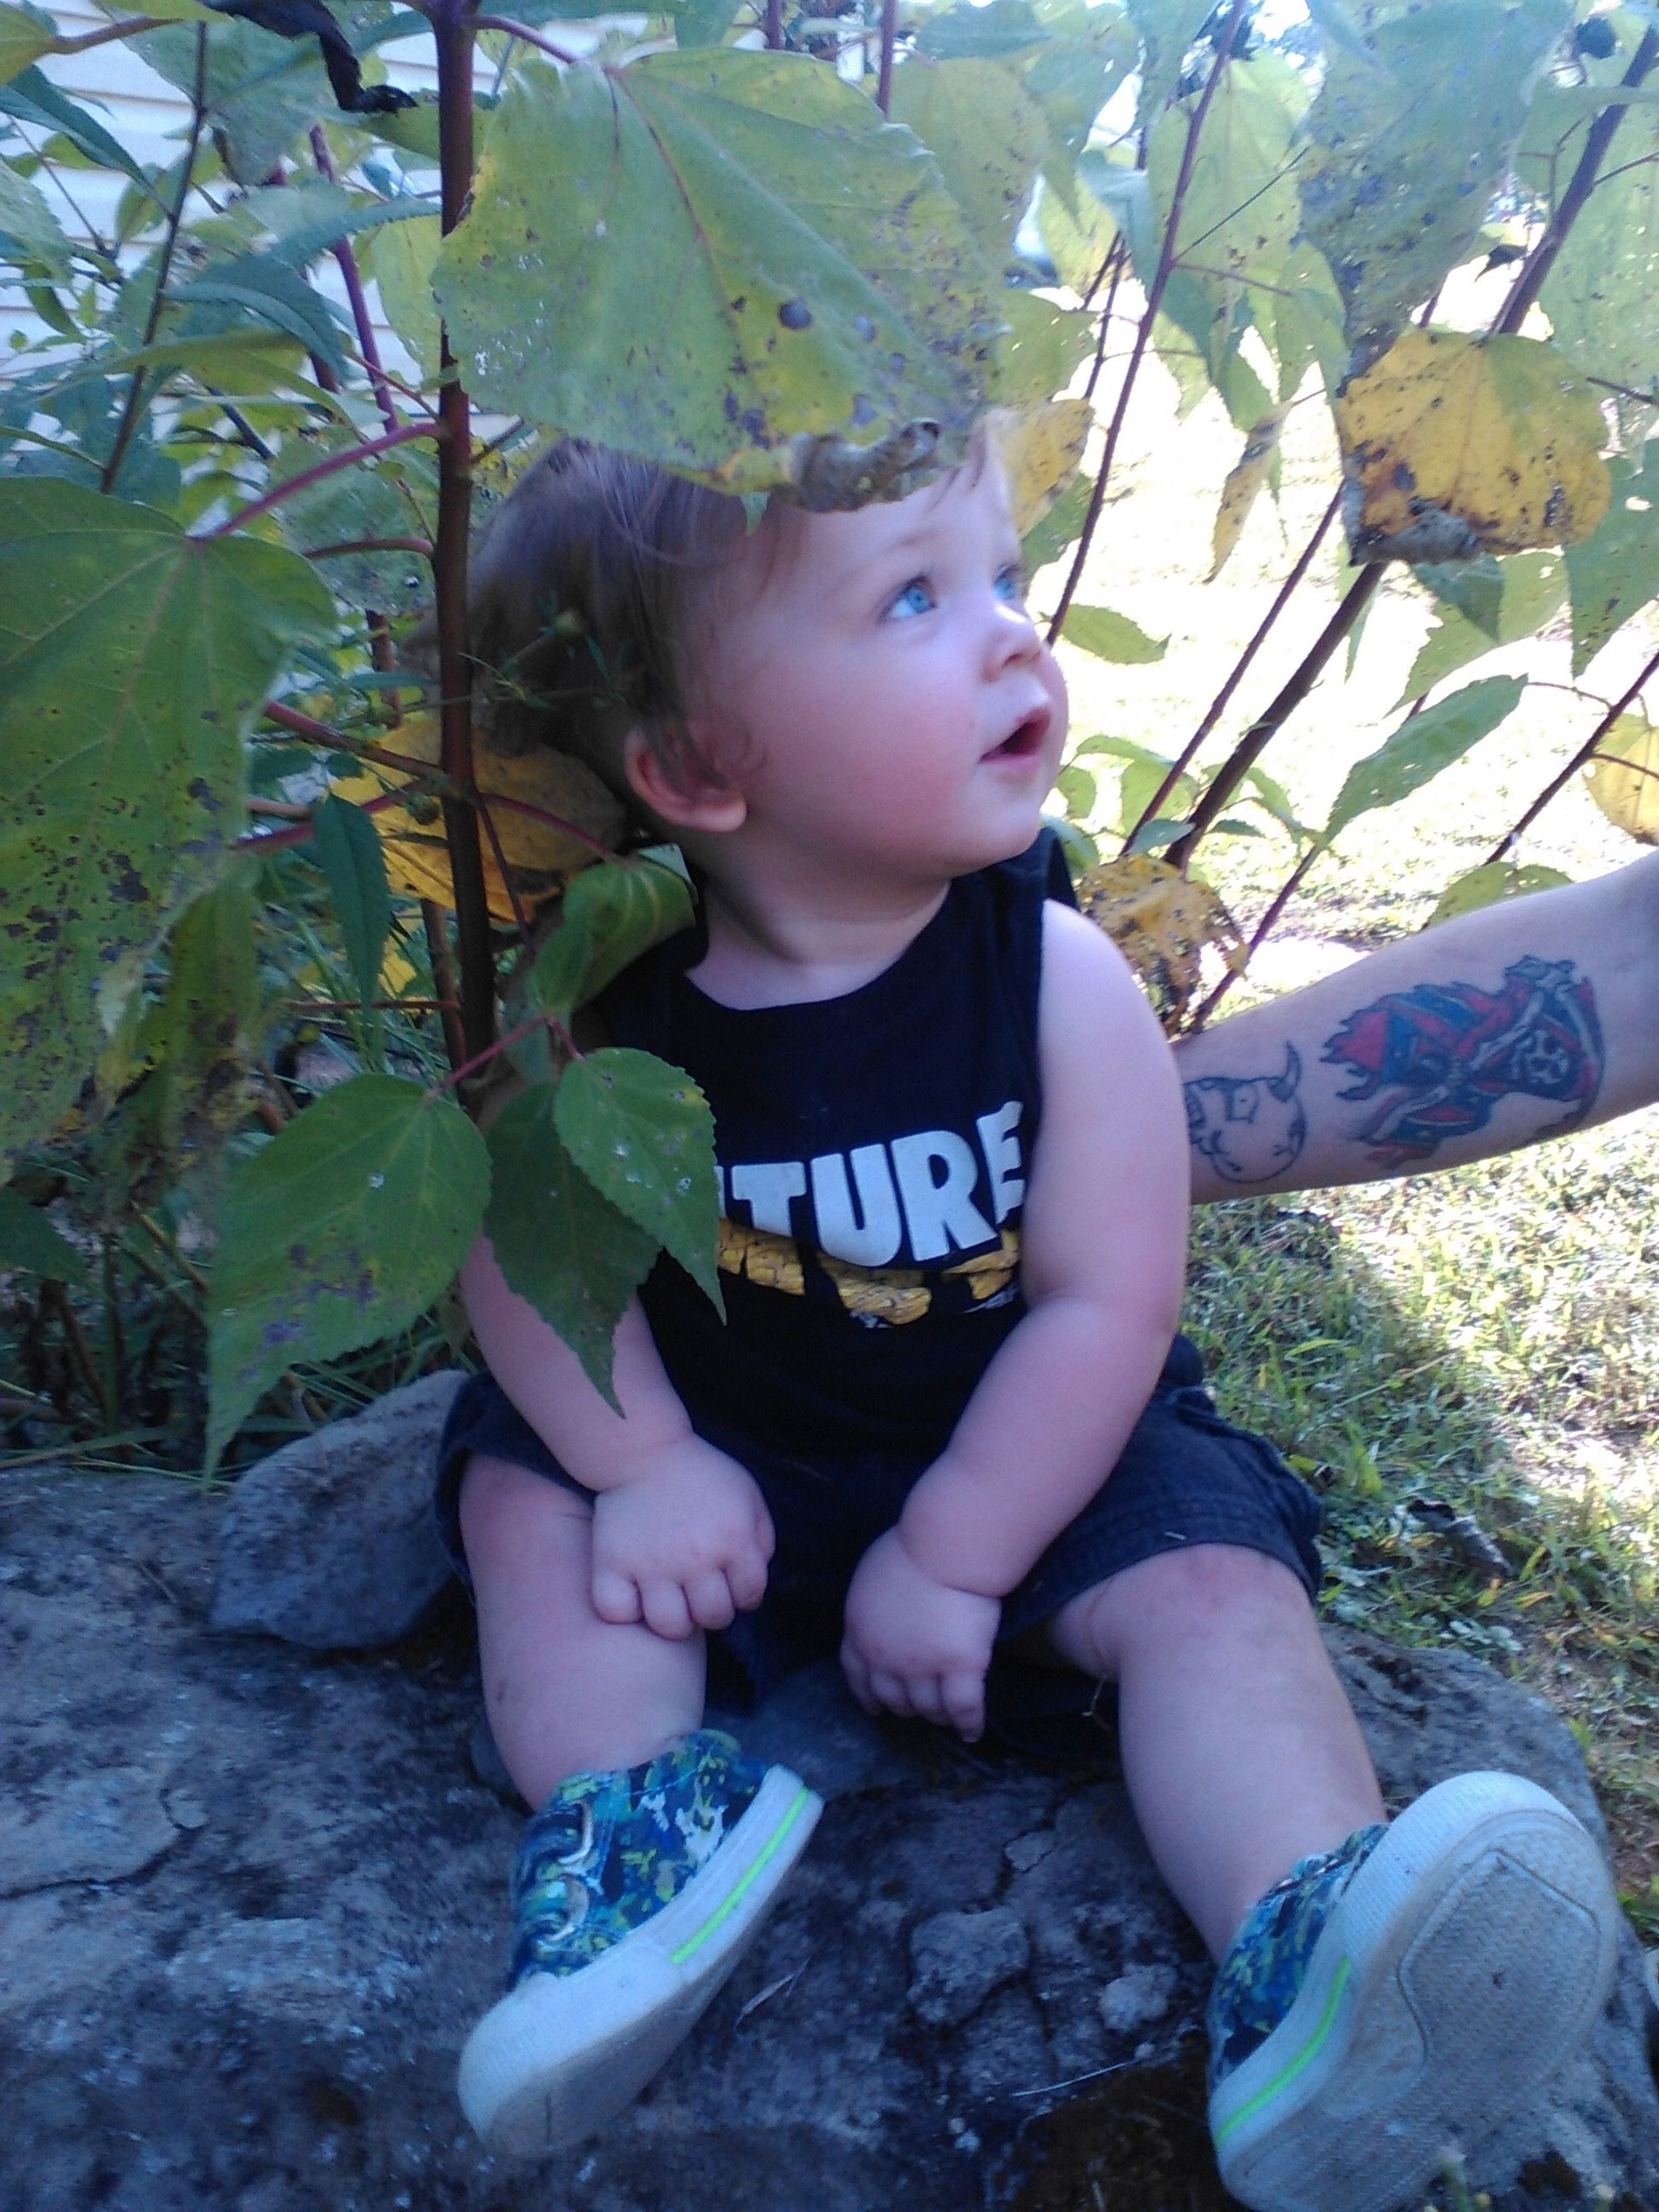 leaf, childhood, innocence, cute, elementary age, sitting, full length, casual clothing, person, day, toddler, growth, plant, outdoors, leaves, green color